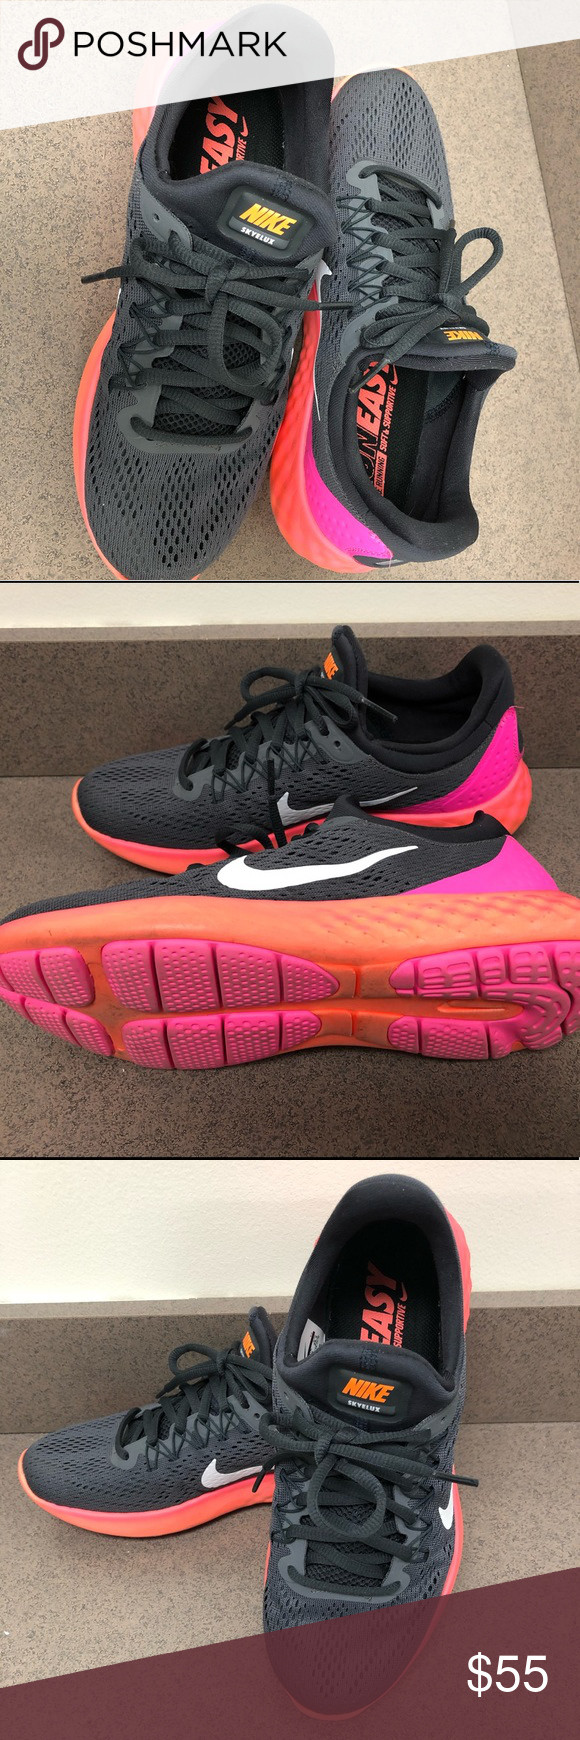 store pretty and colorful best value Nike Lunar Skyelux Running Shoes RUN EASY- Nike Running Soft ...